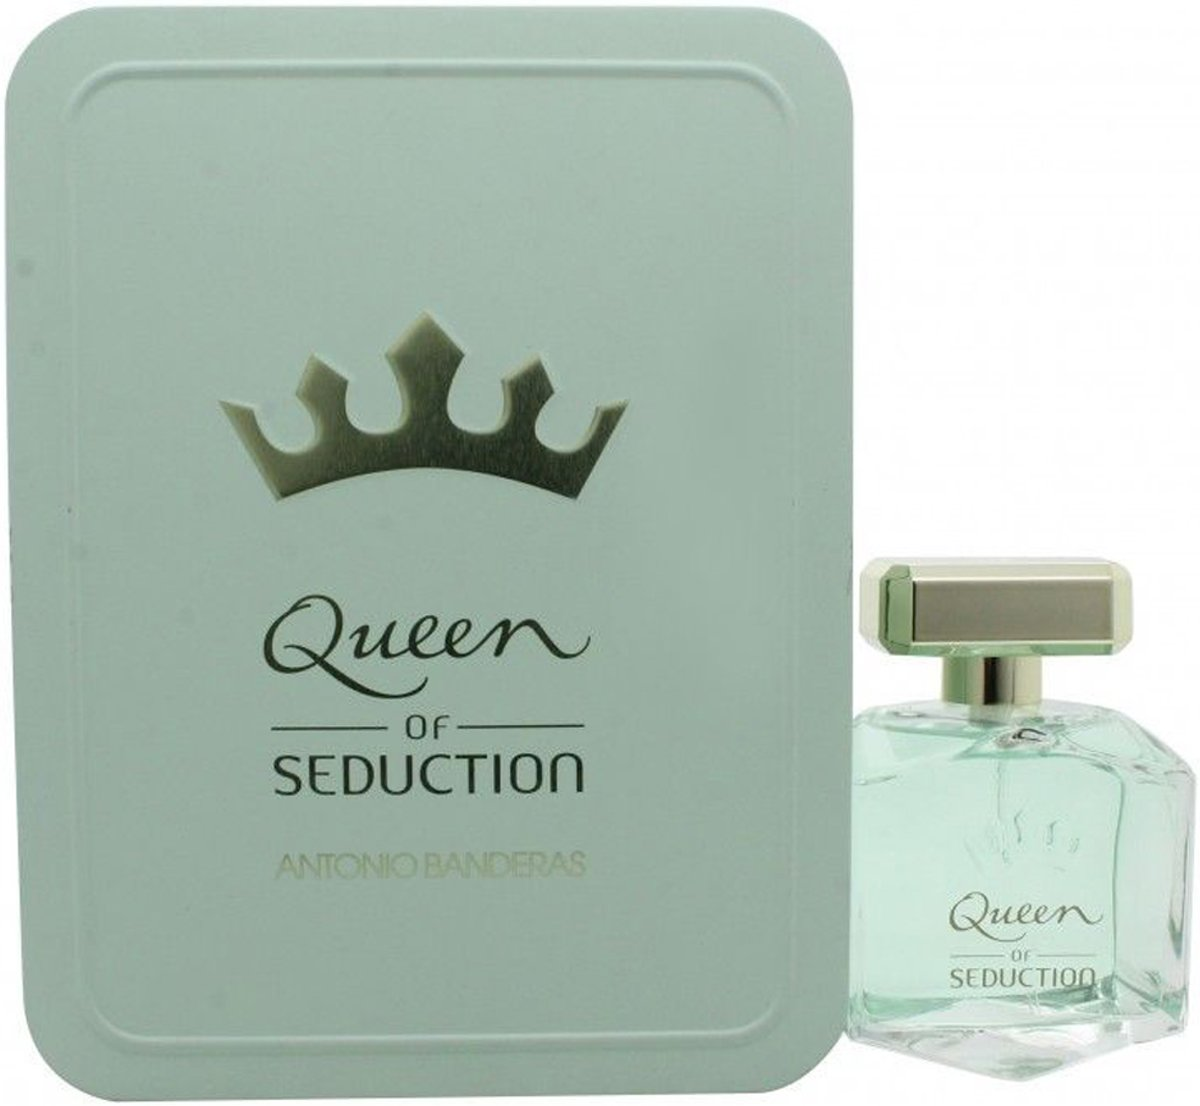 Antonio Banderas Queen Of Seduction - 80ml - Eau de toilette